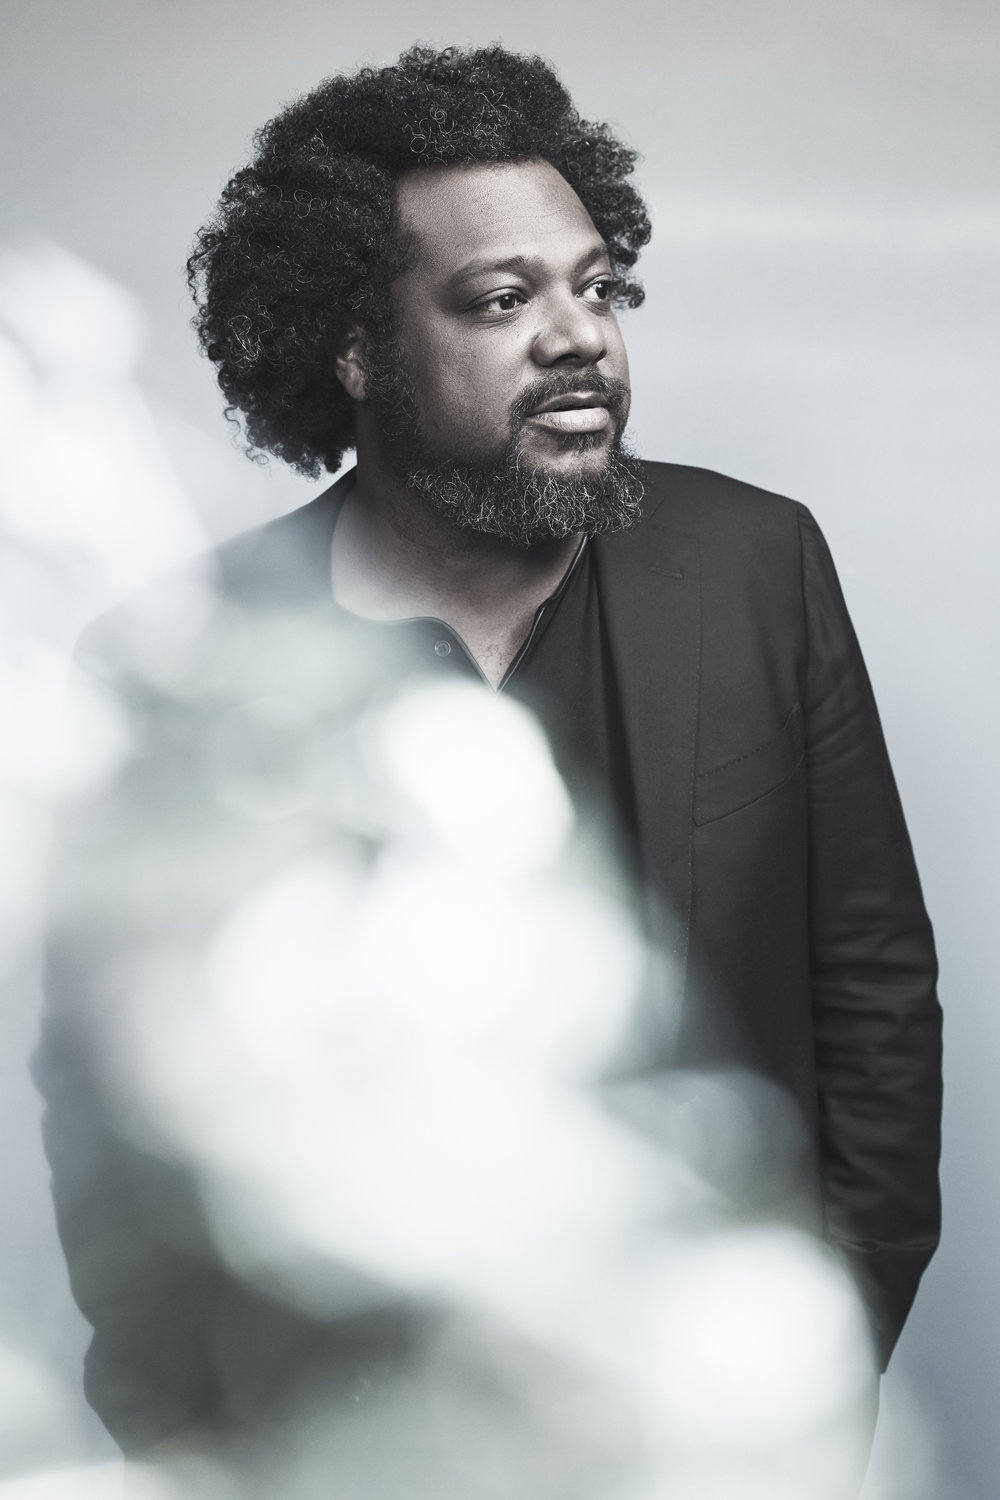 """Bonin Bough - Bonin Bough is one of the foremost-awarded marketing executives in the world, the host of CNBC's Cleveland Hustles, and the author of Txt Me (646) 759-1837.As one of the youngest-c-suite executives at a Fortune 50 Company, he has worked for billion-dollar CPG brands including Mondelez and PepsiCo before starting Bonin Ventures - a growth accelerator that helps businesses of all shapes and sizes achieve revenue growth faster than they ever believed possible.Bonin has been responsible for some of the most successful organization transformations, and the rapid growth of some of the world's most-loved billion-dollar brands including Oreo, Cadbury's, Pepsi, Gatorade and Frito-Lay. Most recently, as the Chief Growth Officer of SheaMoisture, he helped grow the business by close to 50% in 12 months leading to the company being acquired by Unilever for close to $1 billion dollars.During his time as Chief Media Officer at Mondelez International, Bonin managed over $3 Billion dollars in media spend, making him the seventh largest media buyer in the world. Highlights from his tenure include shifting the organization from just-3% to over-32% digital spend - adding $2 Billion in top line net revenue and $300m in bottom line savings. He helped brands like Sour Patch Kids become the fastest growing candy brand in the world. When he added eCommerce to his role, he grew online sales from $65m - $265m in the 18 months that he ran it. Before that he led digital globally for PepsiCo and built two global digital agencies prior to that one for IPG.Found consistently at the forefront of thinking and execution in innovation, Bonin is recognized as one of business' hottest rising stars and one of the industries top mobile marketers. He has been inducted into the Advertising Hall of Achievement. He can also be found in lists such as Fortune's """"40 under 40"""", Fast Company's 100 Most Creative People in Business, Ebony's Power 100 and The Internationalist's Internationalists of the """